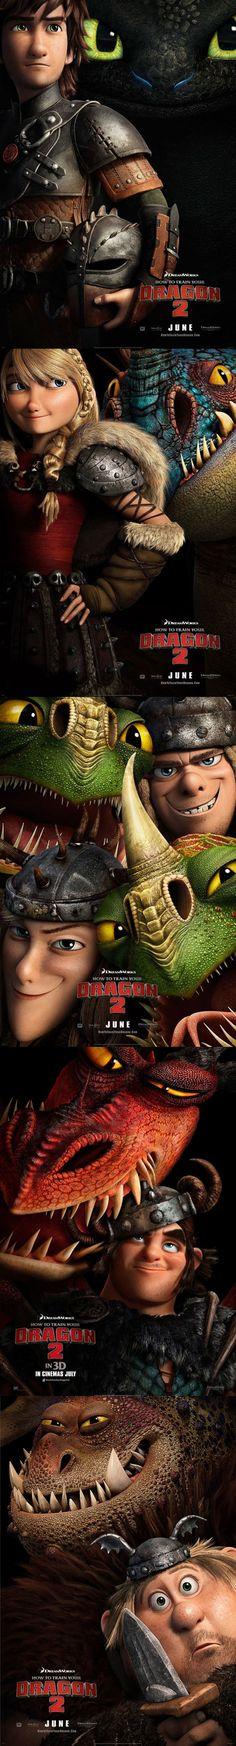 Watch How to Train Your Dragon 2 Online Free | Watch Movies Online Free Without Downloading